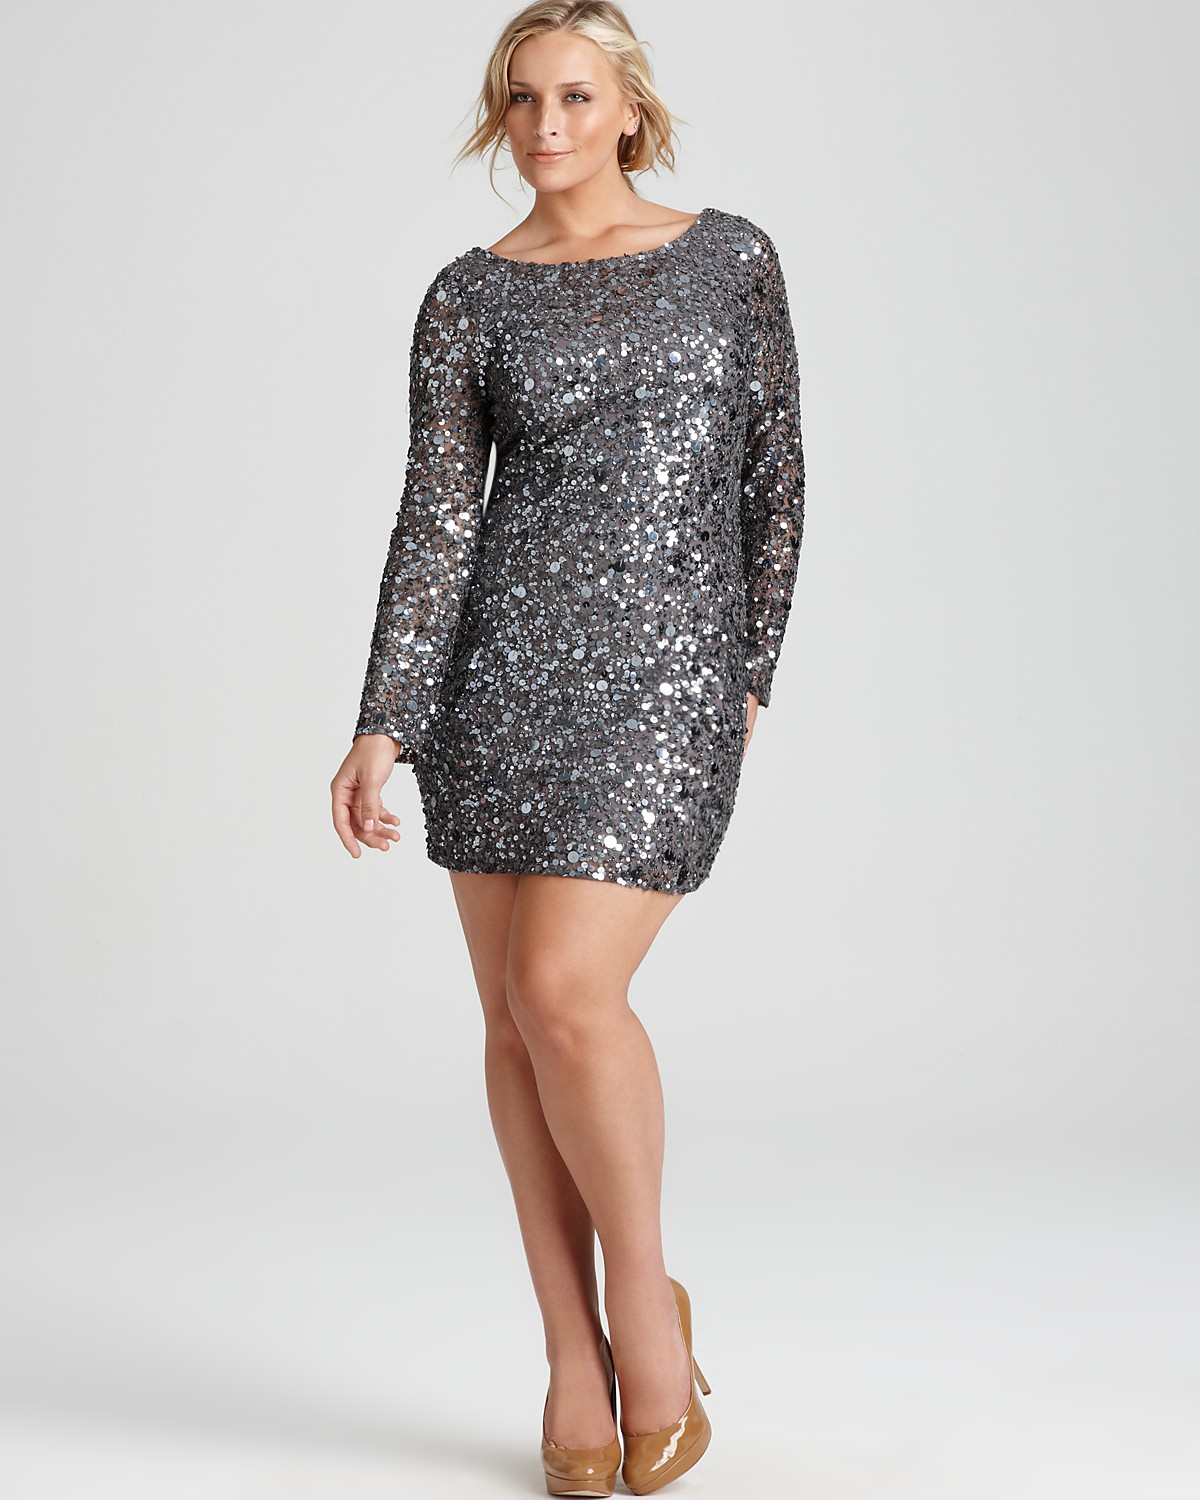 Plus Size Sequin Dress | Dressed Up Girl